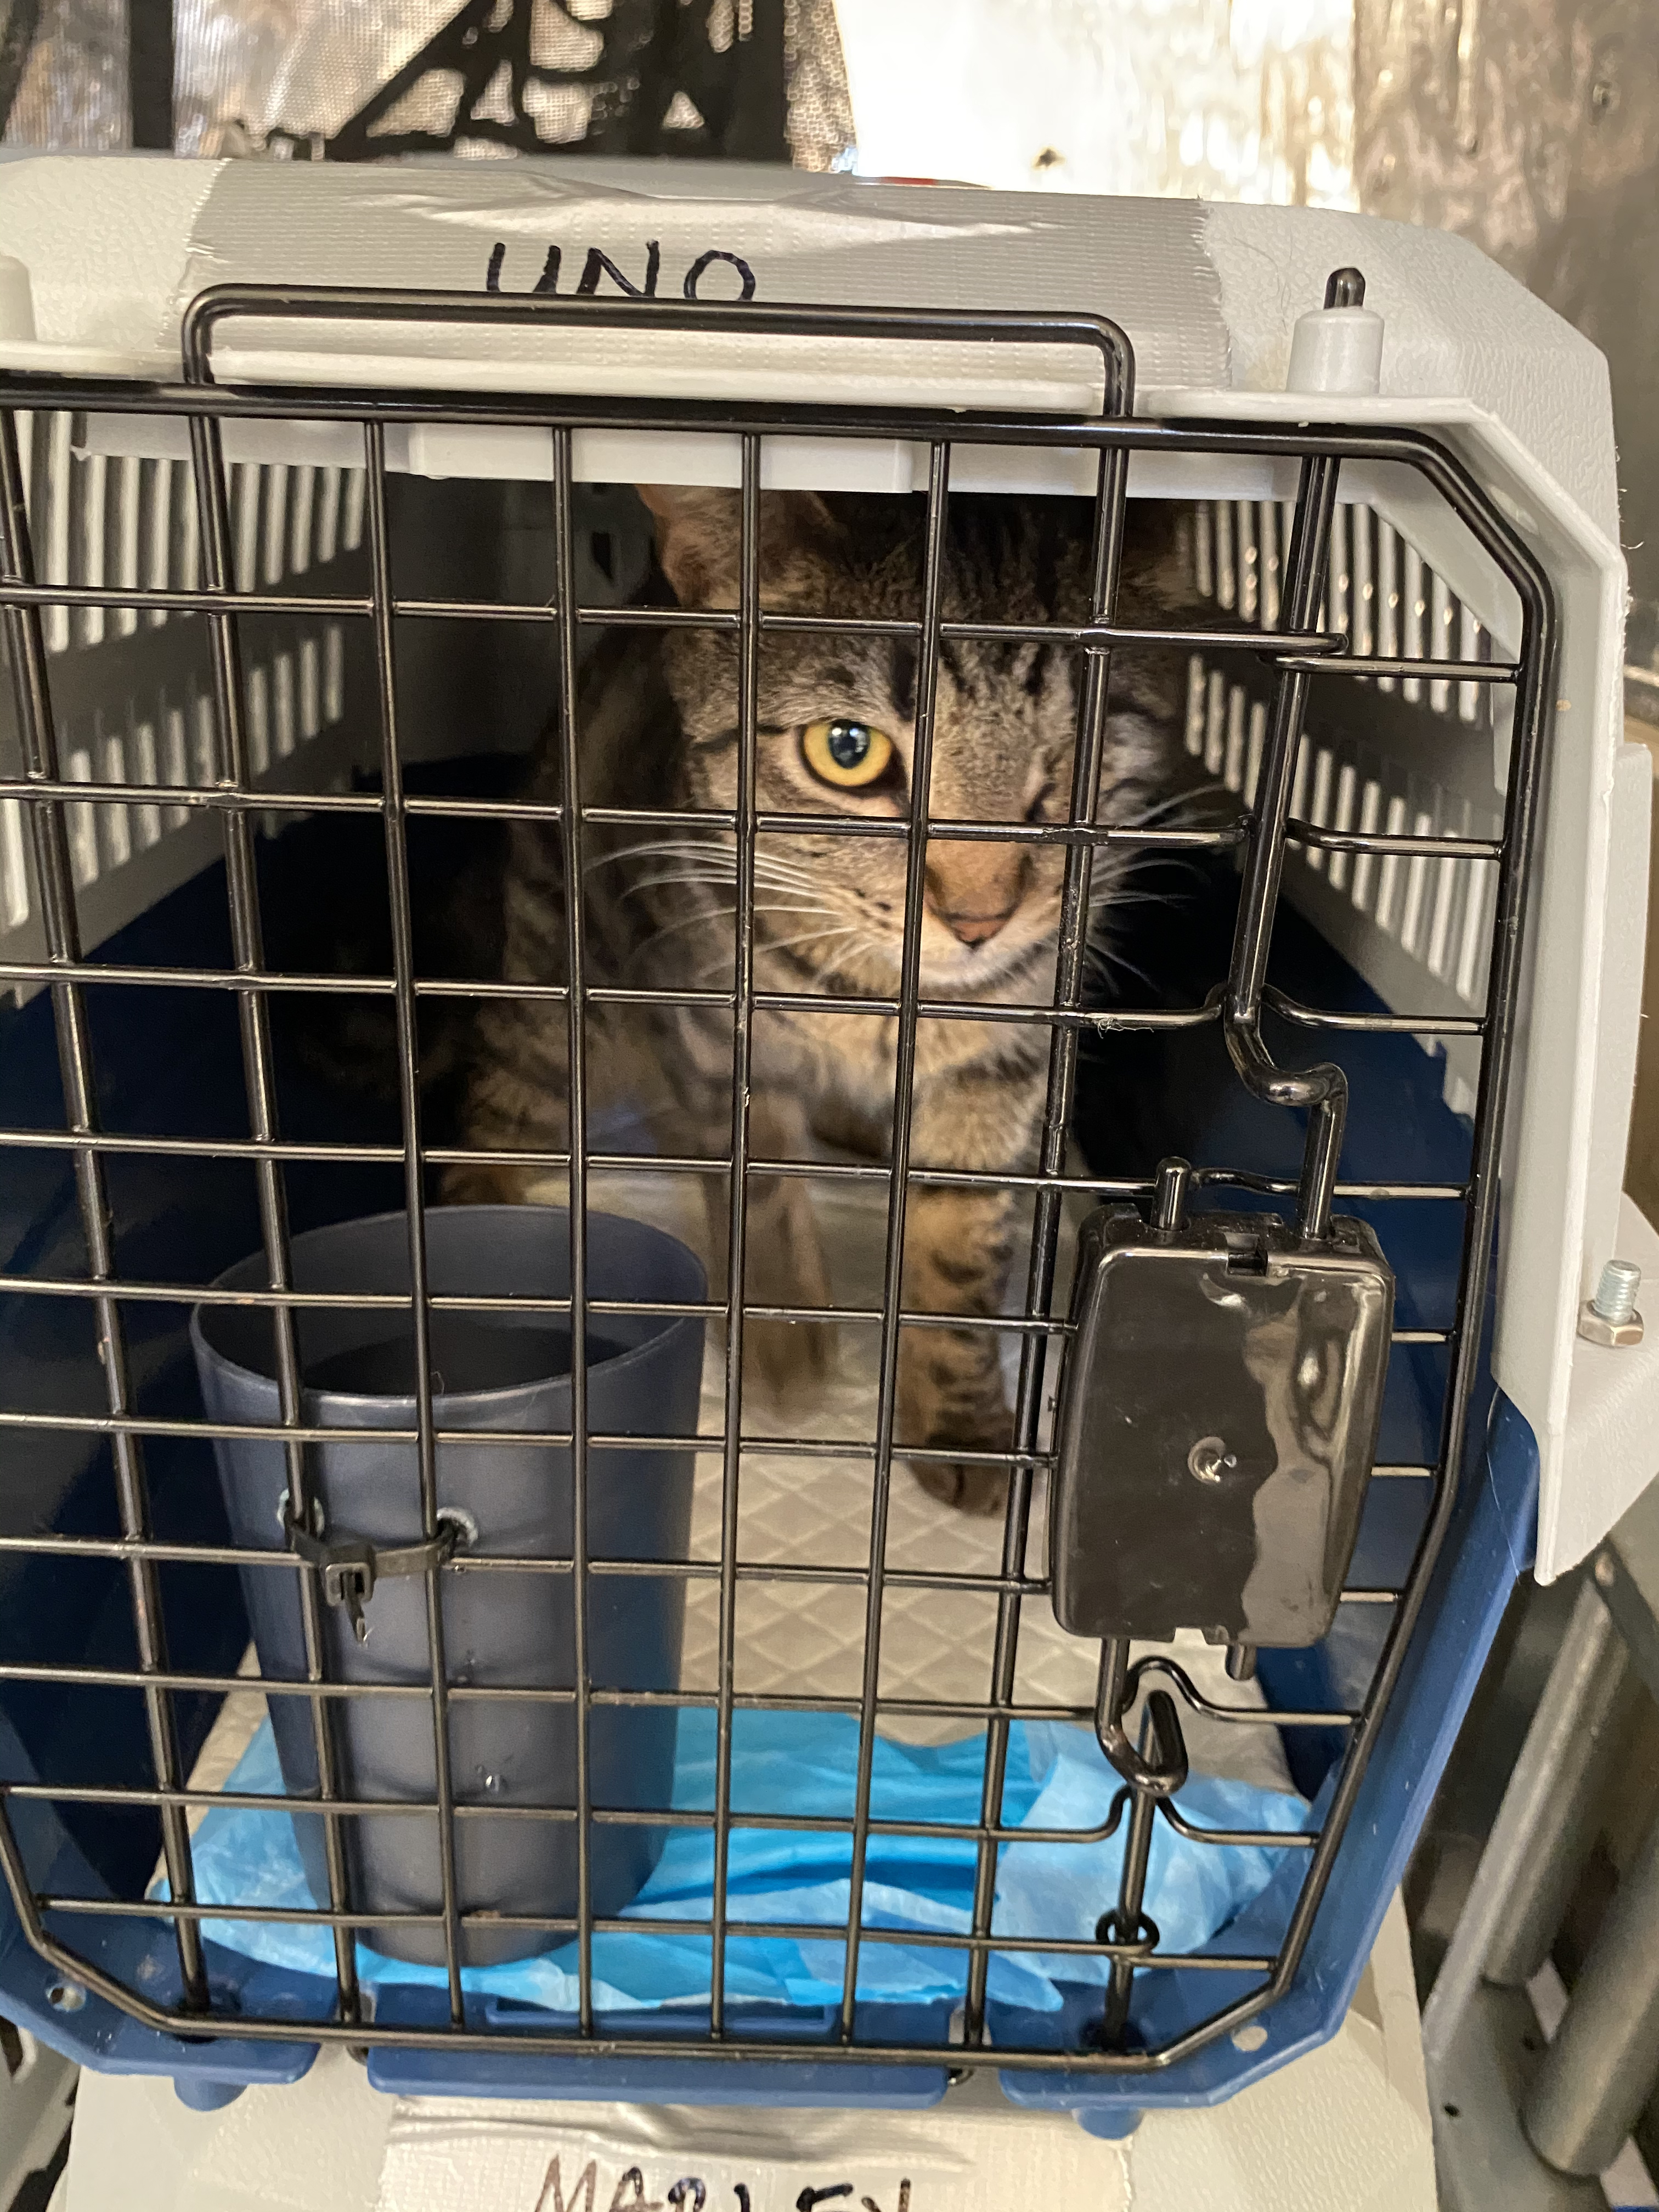 Uno in Crate on Plane_©Greater Good Charities_GF iHC